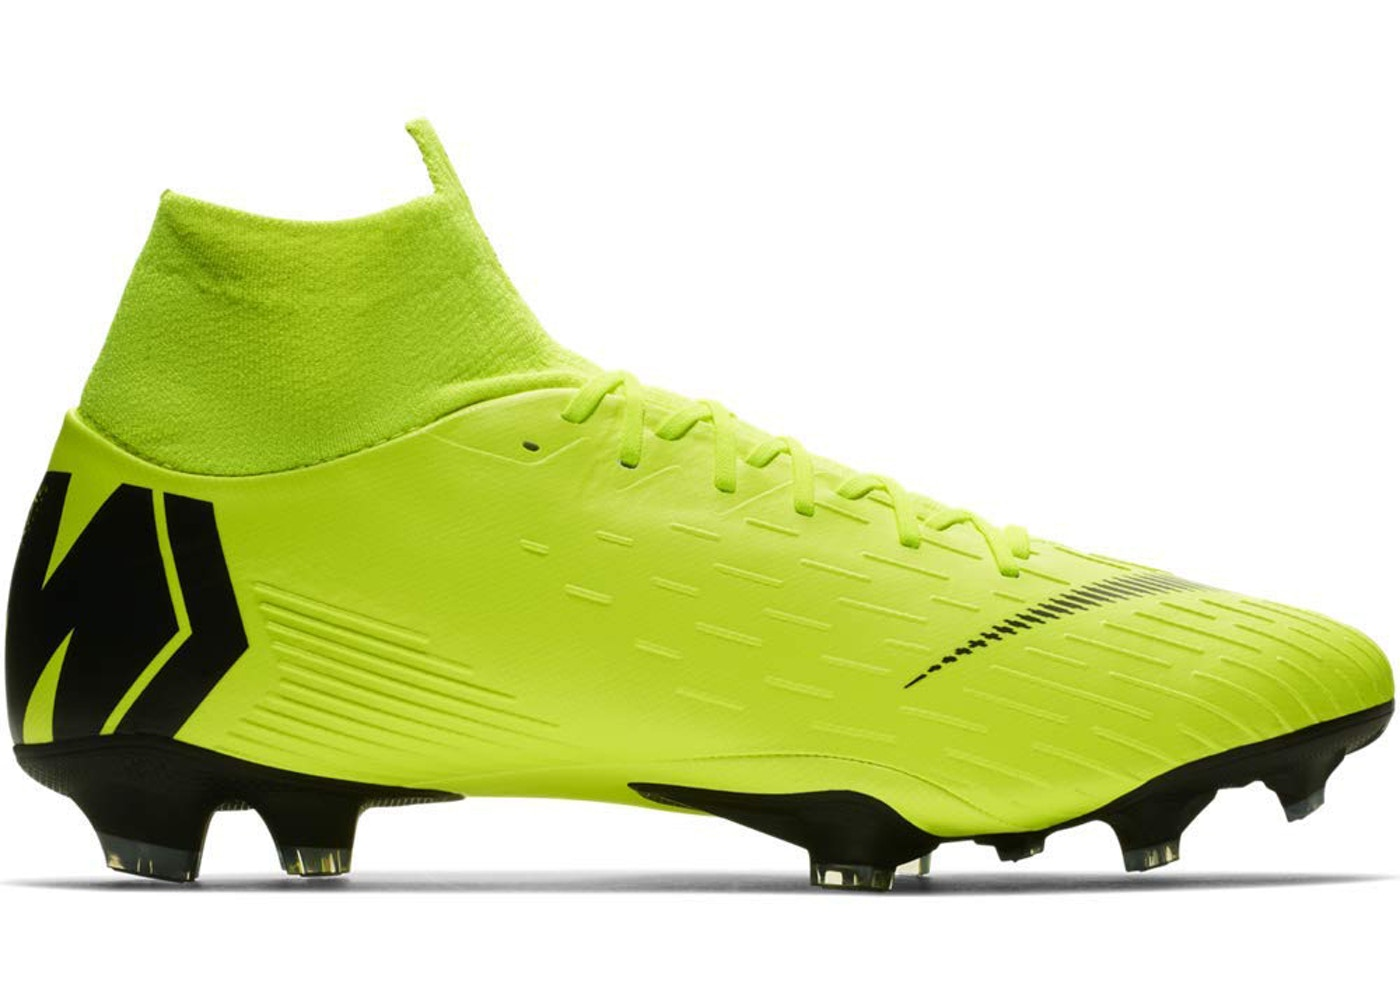 reputable site a22f5 a8c1f Nike Mercurial Superfly 6 FG Volt Black